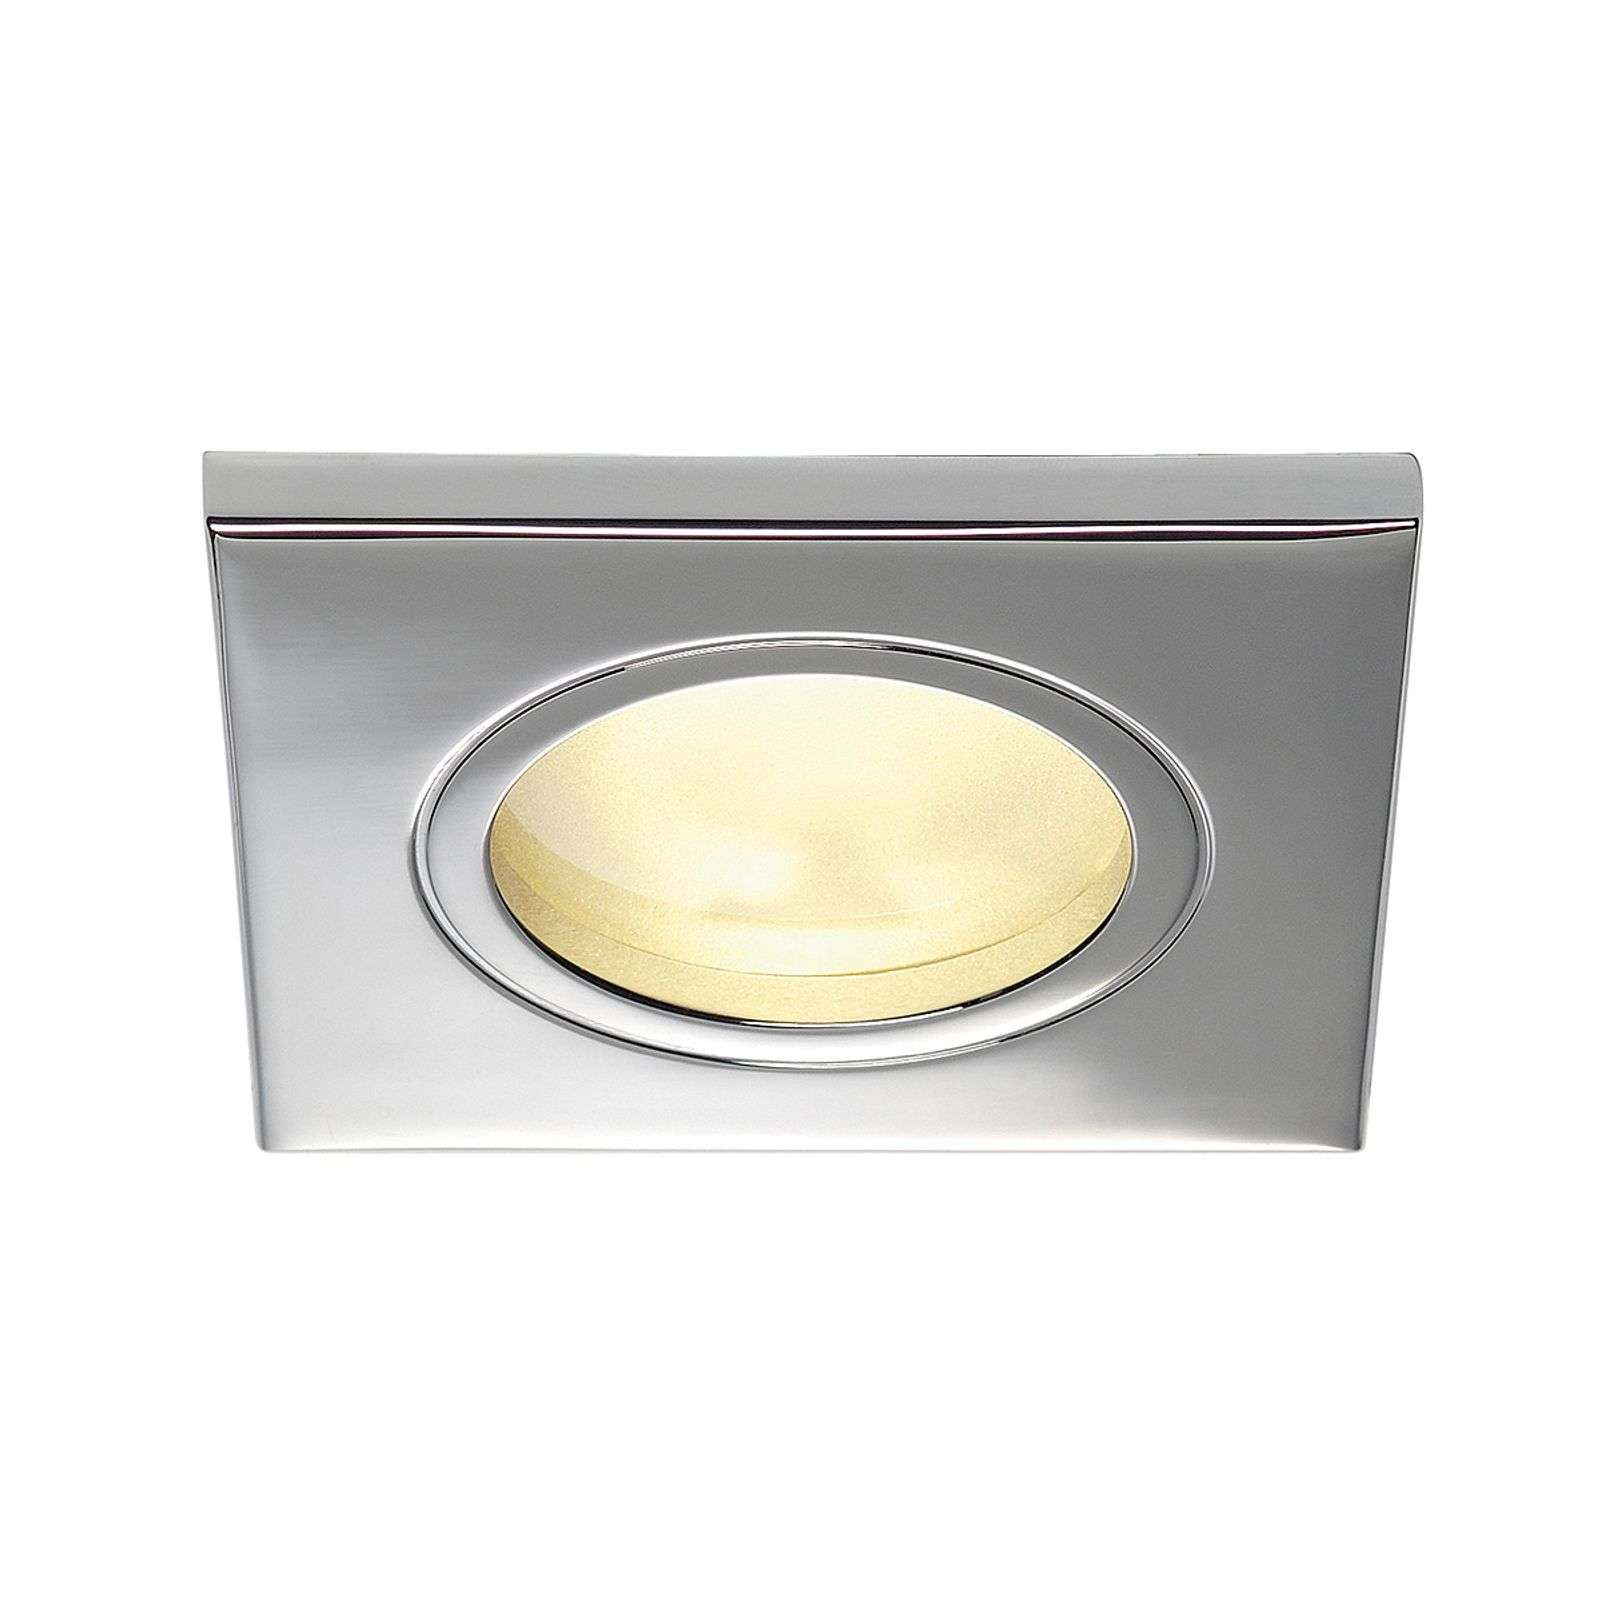 FGL SQUARE Recessed Spot, Chrome